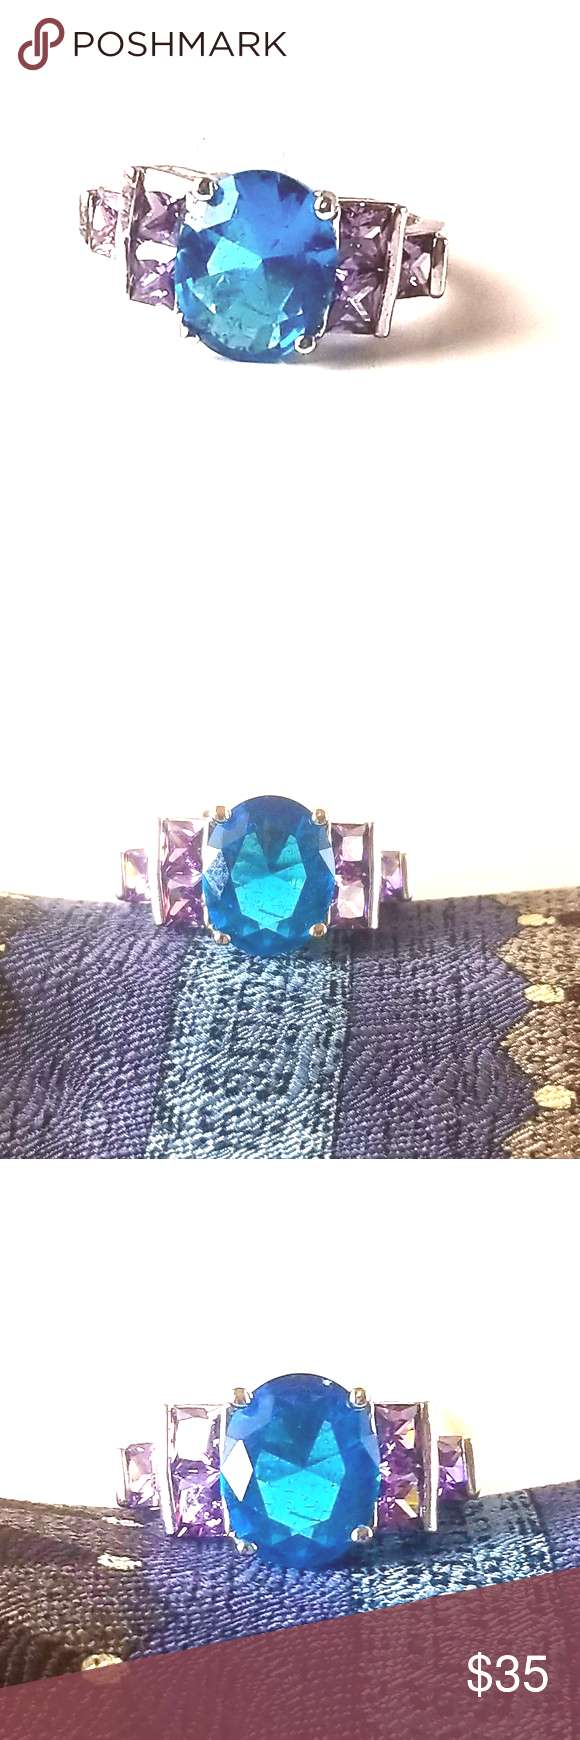 New silver blue topaz and amethyst ring size 9 Size 9 silver blue topaz and amethyst womens ring 5s